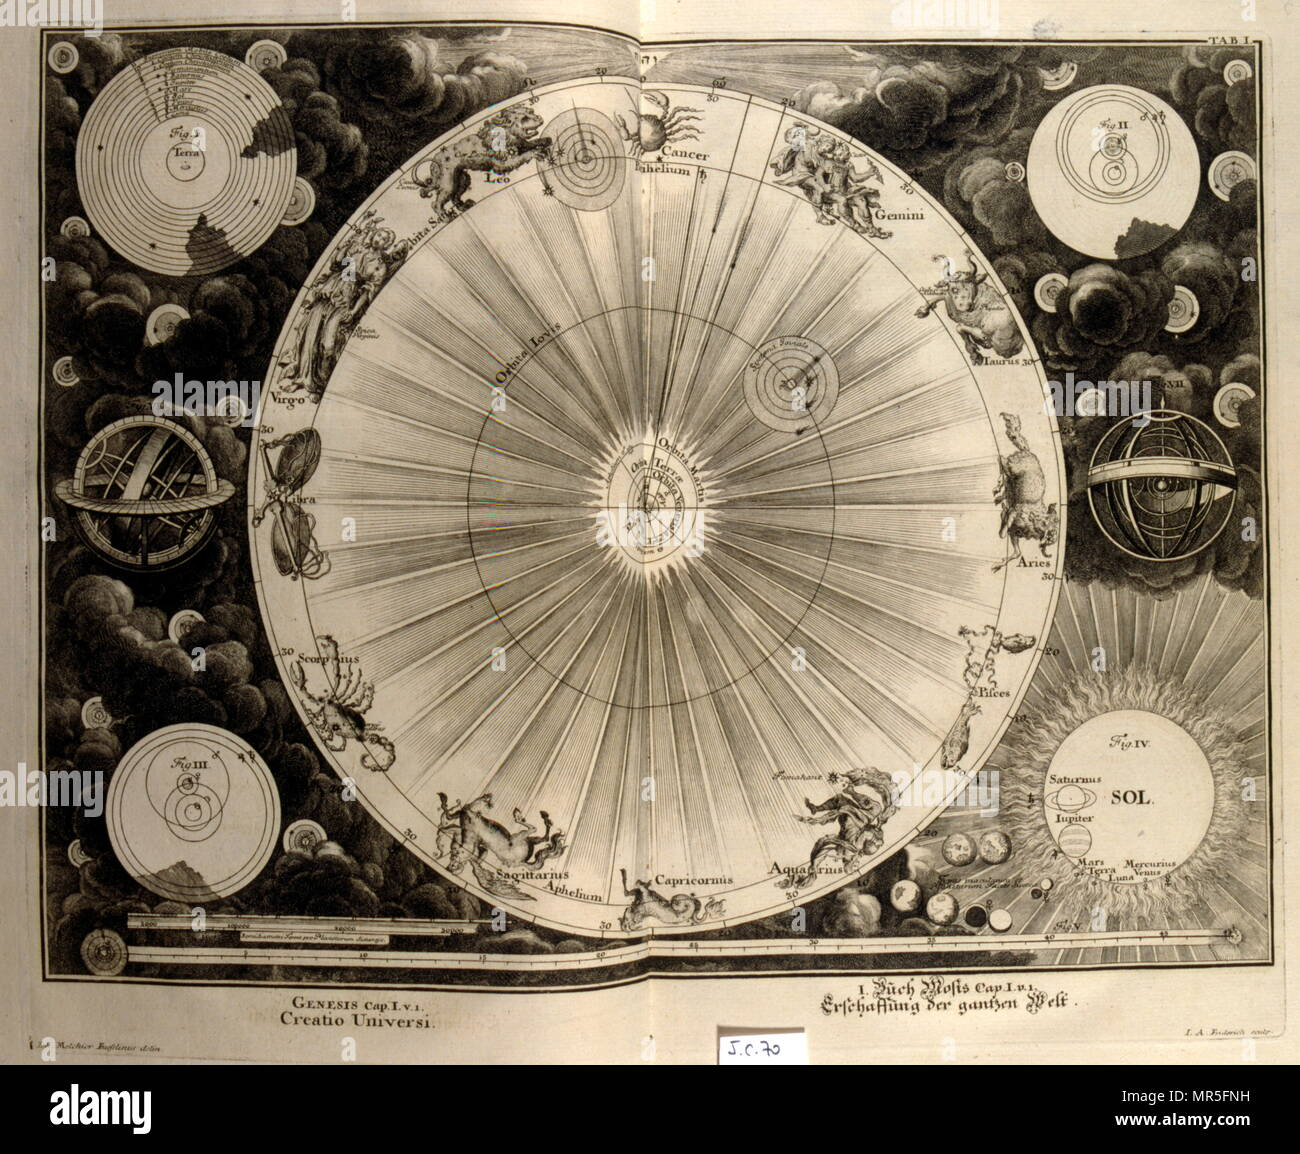 Creation of the earth illustrated in 'Physique sacrée, ou Histoire naturelle de la Bible' 1732. Translated from Latin by Jean Jacques Scheuchzer (1672 – 1733); Swiss scholar born at Zurich. Engravings by Jean André Pfeffel - Stock Image